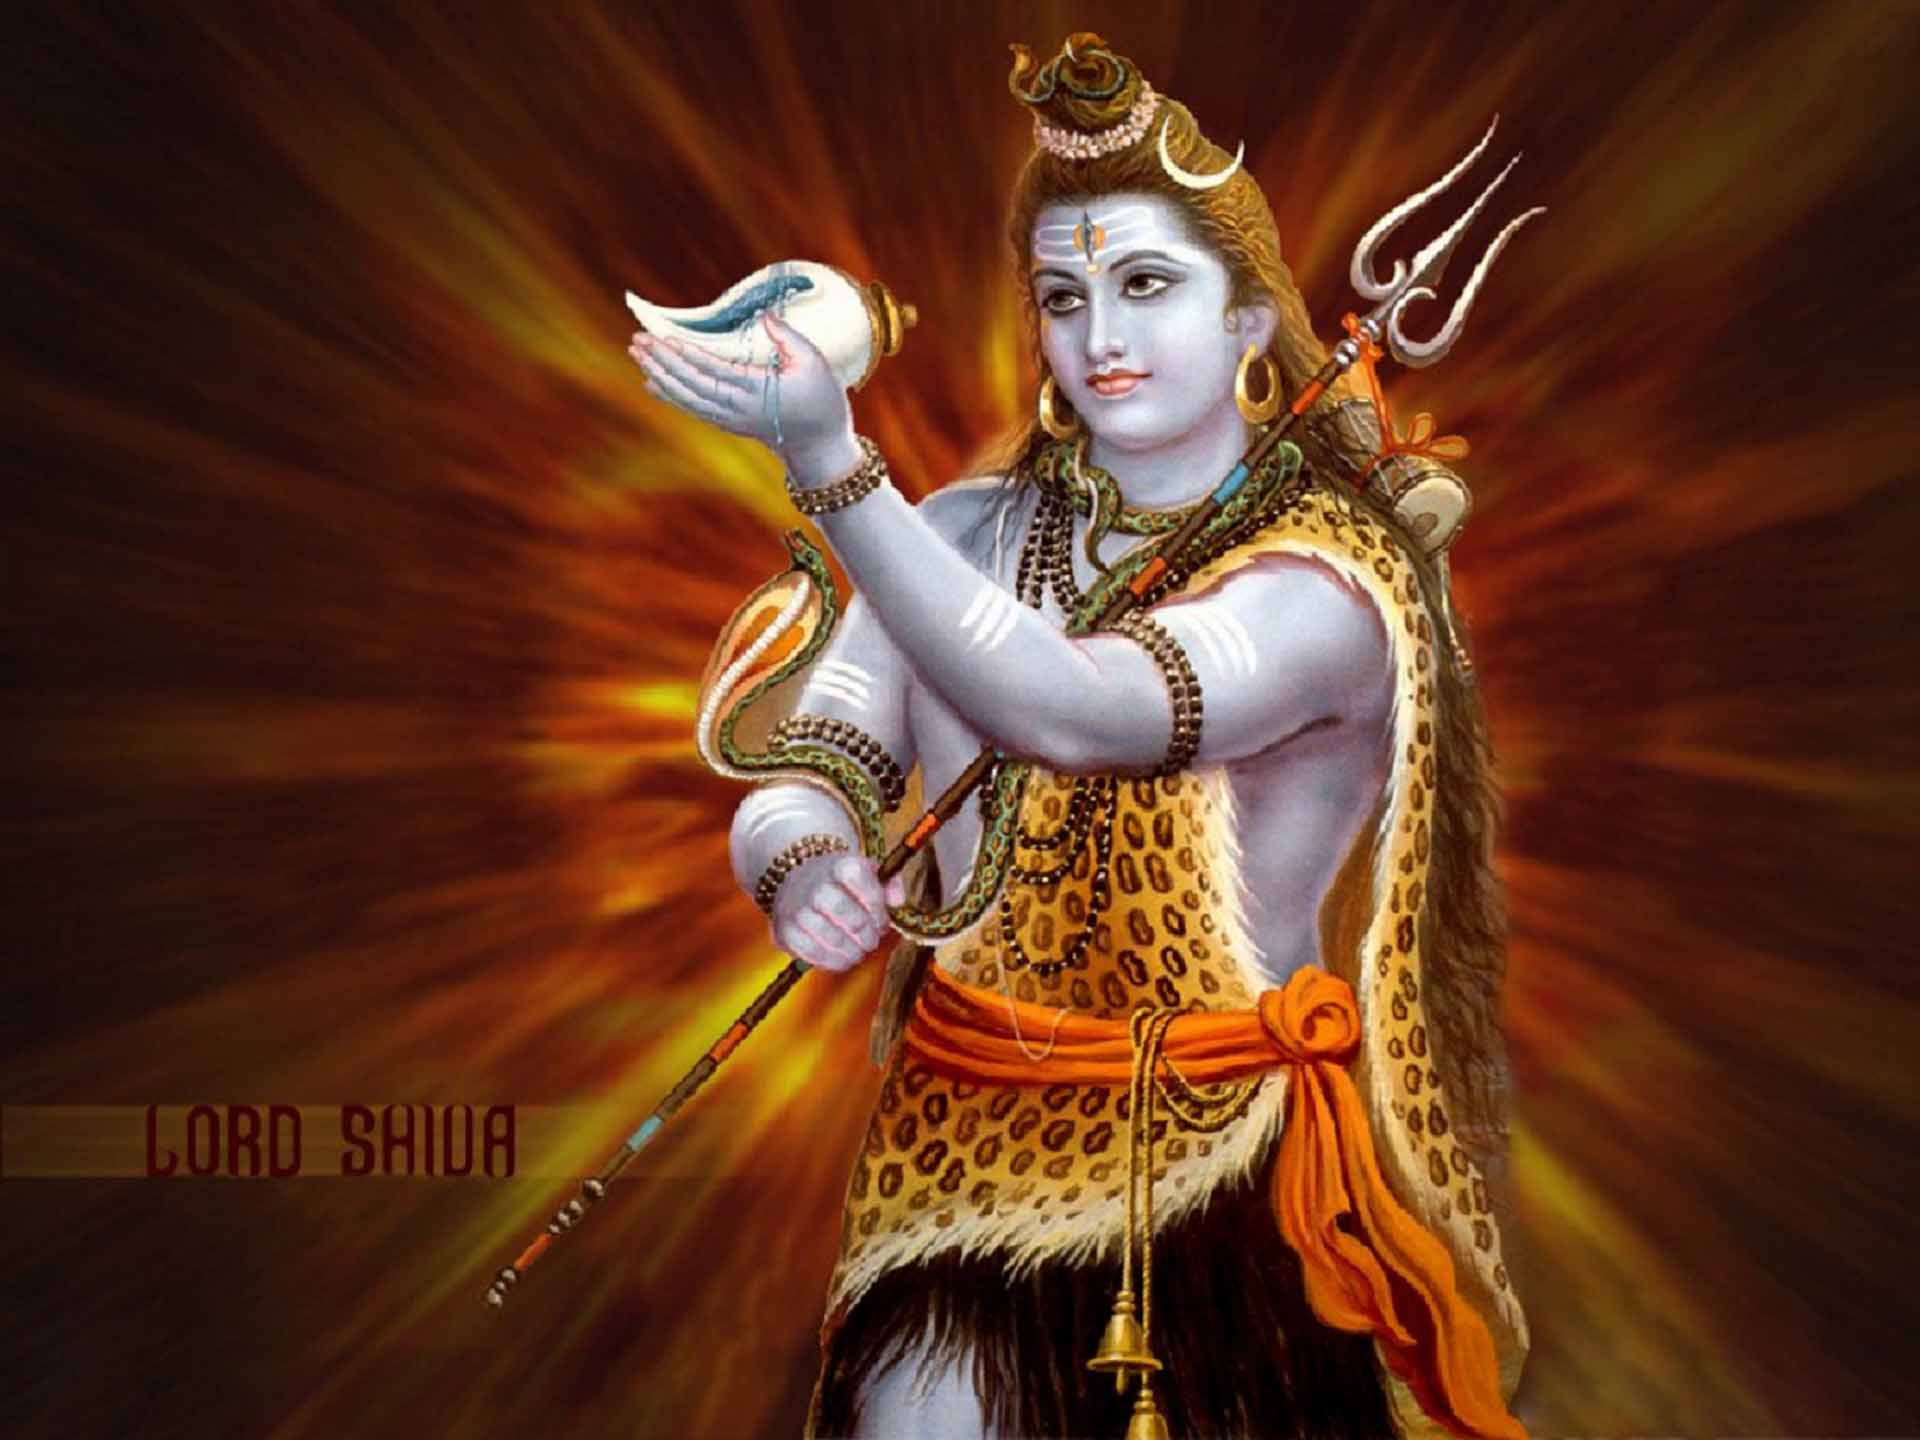 Shiva Live Wallpapers Hd Download Lord Shiva Full Hd Wallpapers Gallery